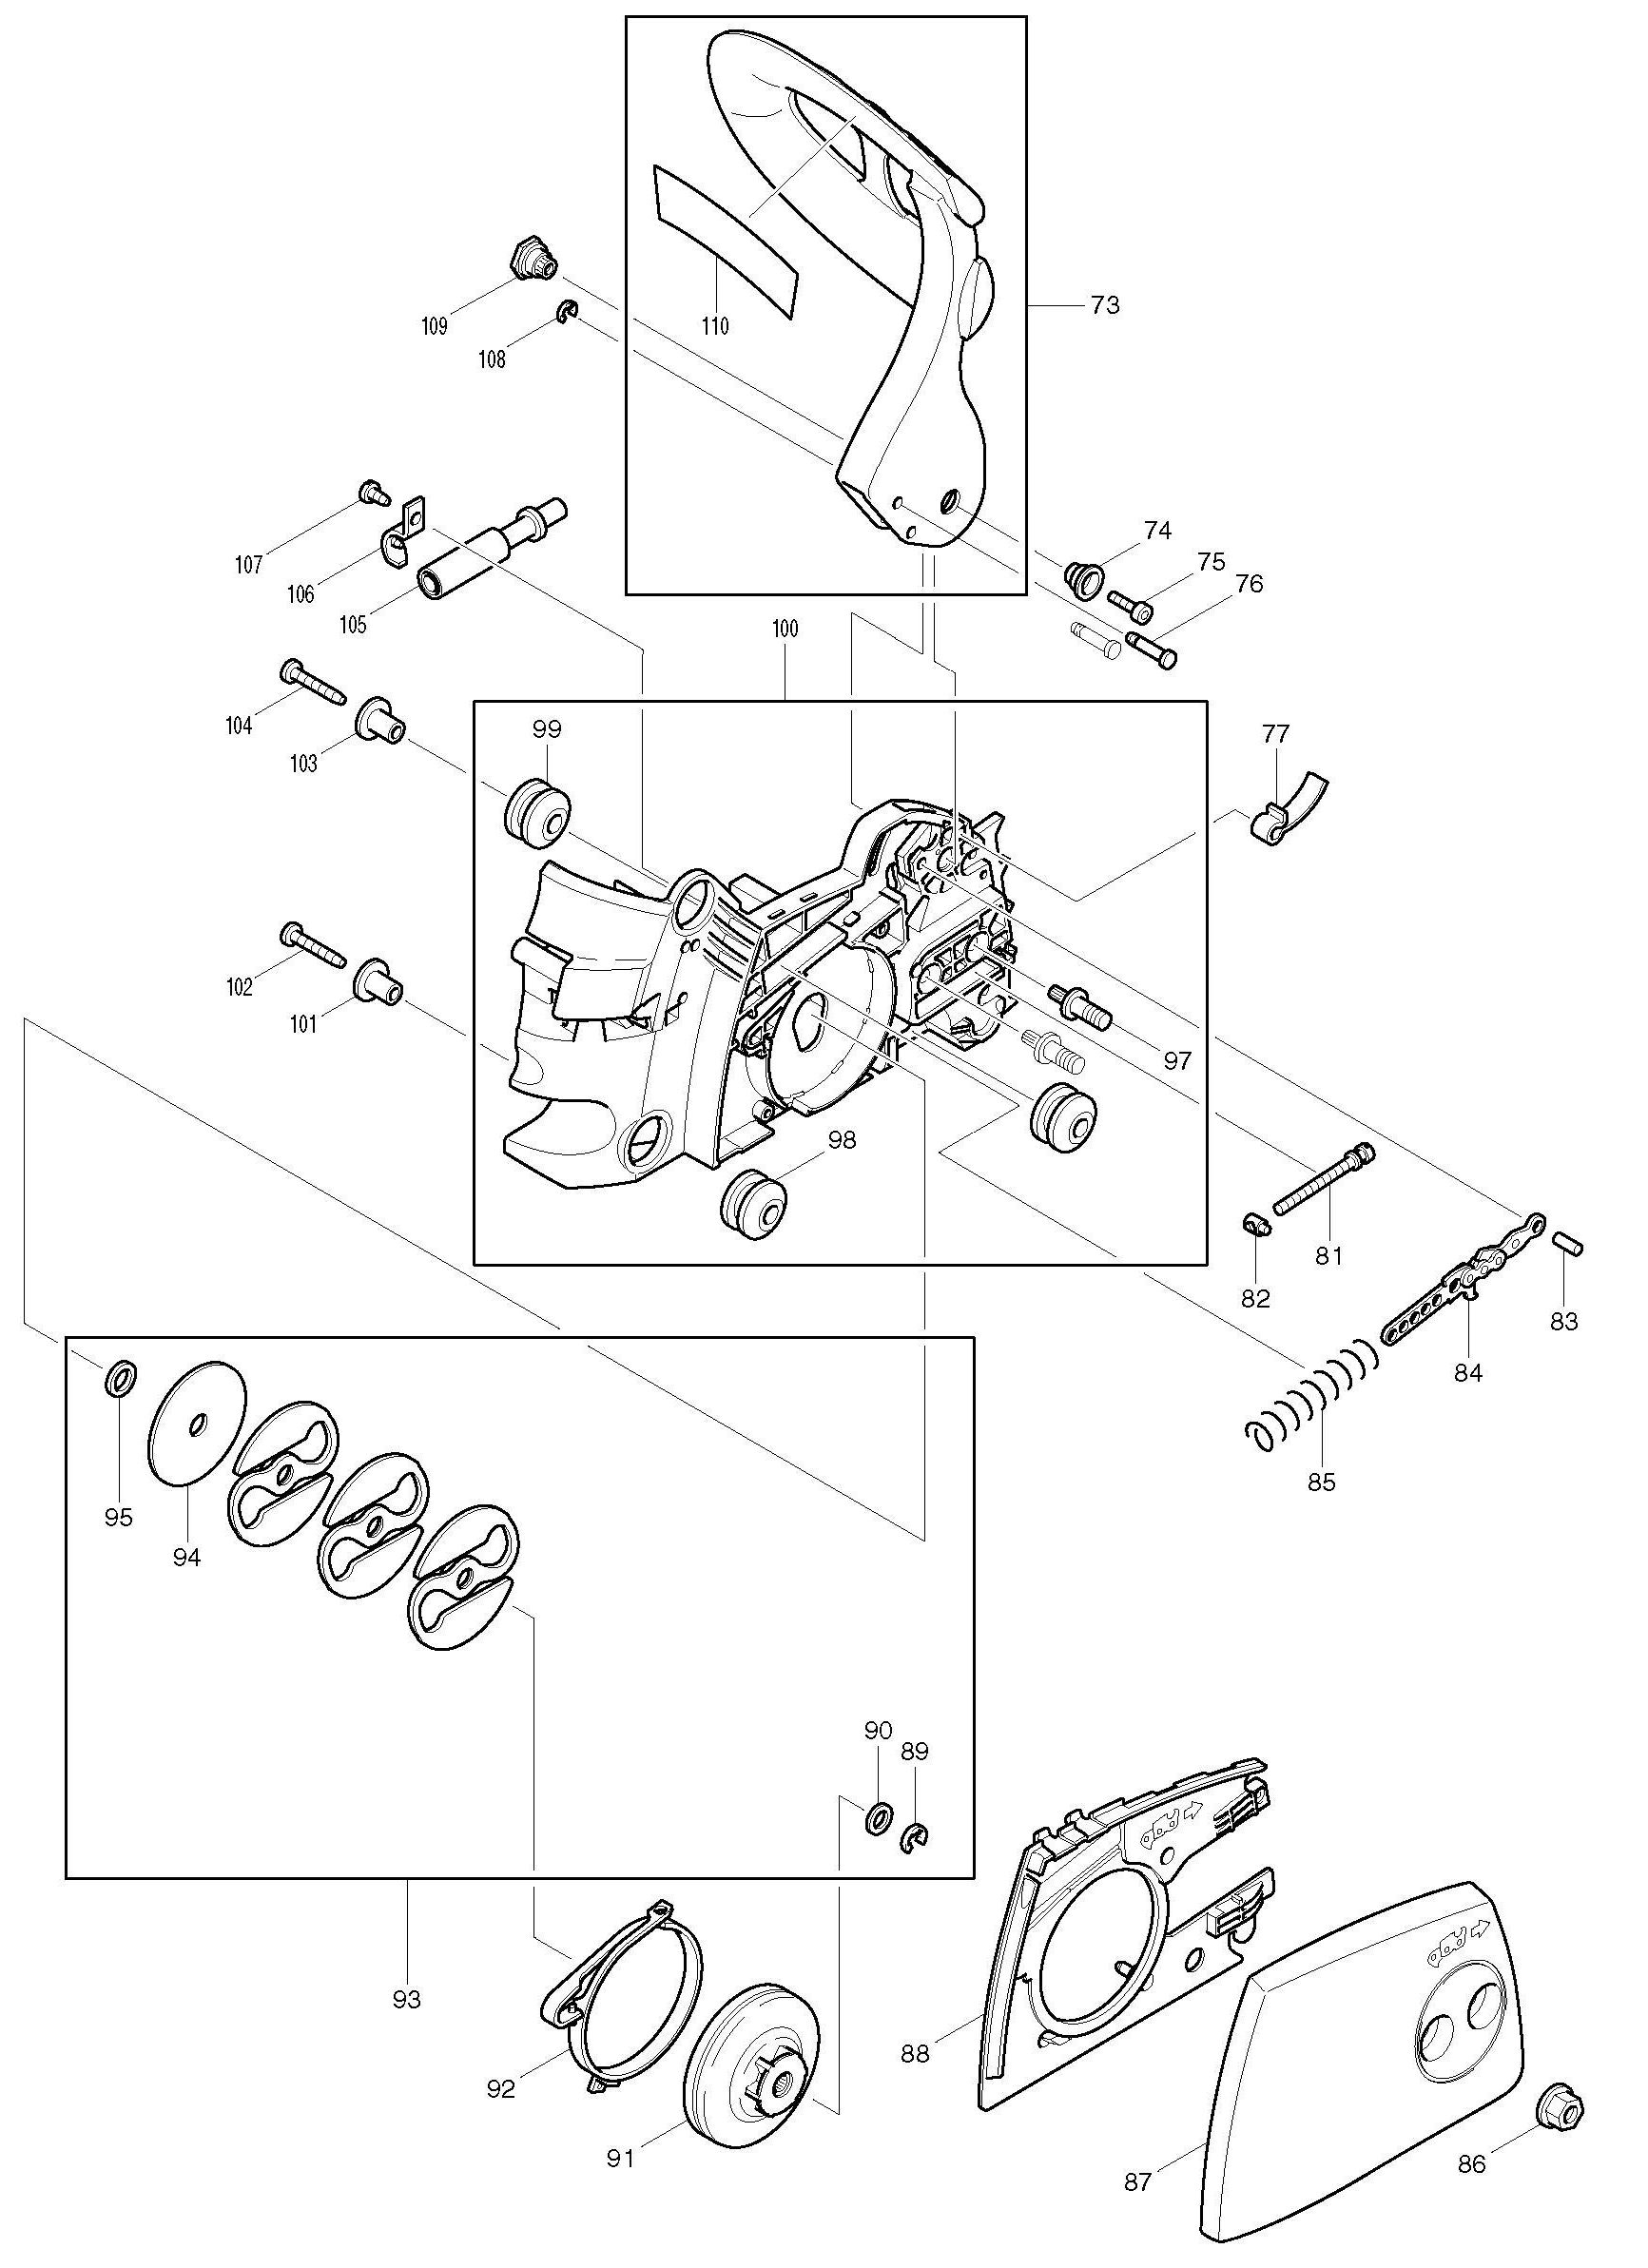 Spares For Makita Dcs34 Chain Saw Spare From Power Tool Centre Chainsaw Engine Exhaust Valve Diagram Click Bigger